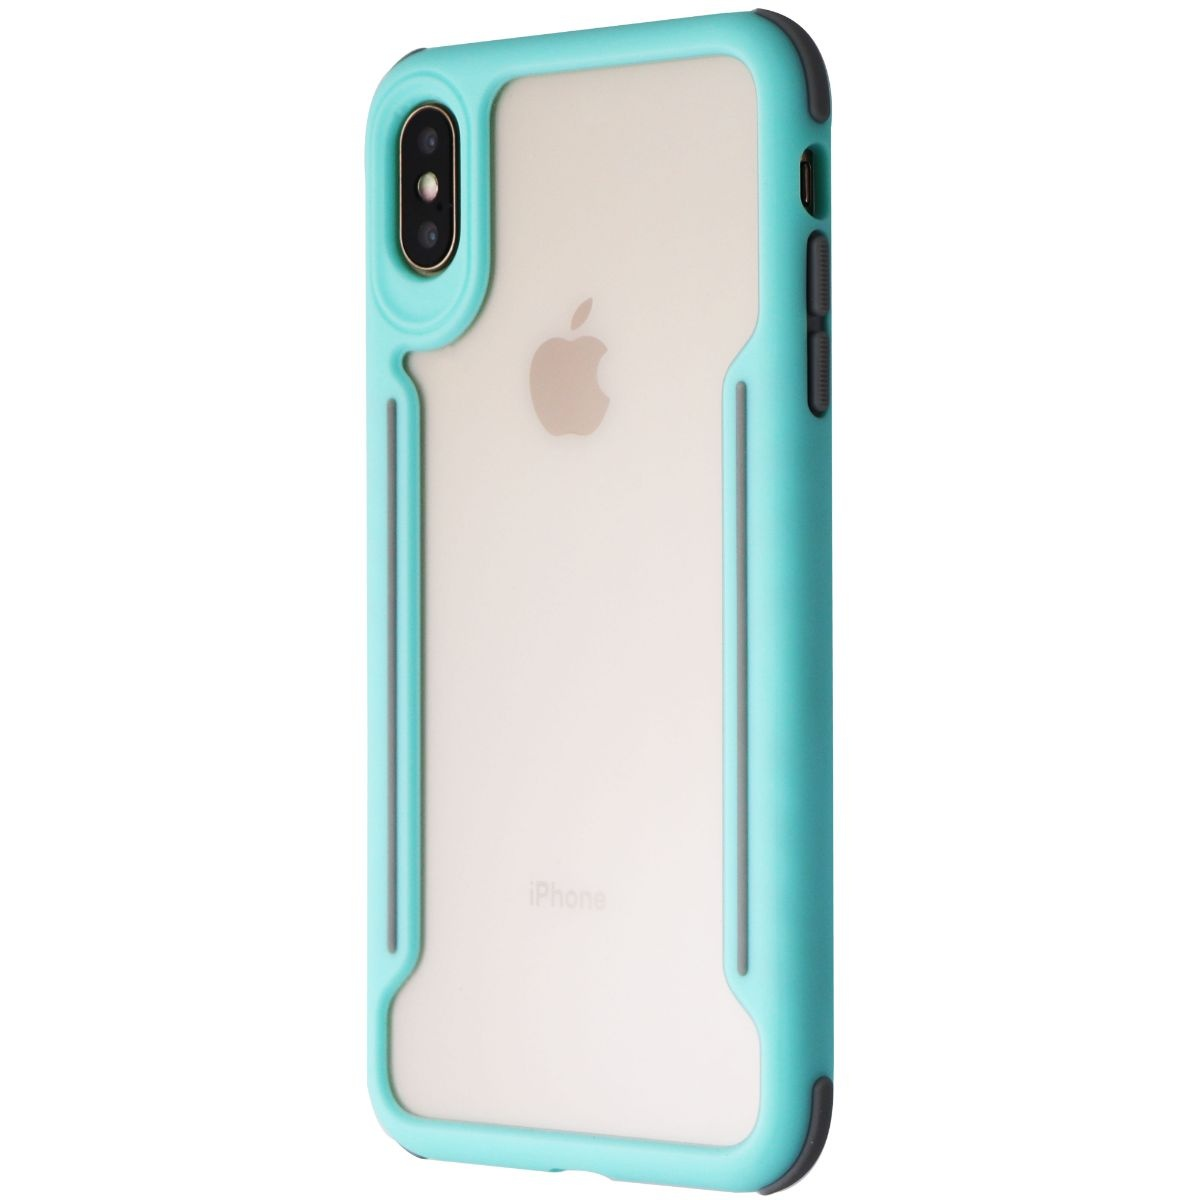 Verizon Slim Guard Clear Grip Case for iPhone XS Max (6.5 In)- Clear/Light Teal